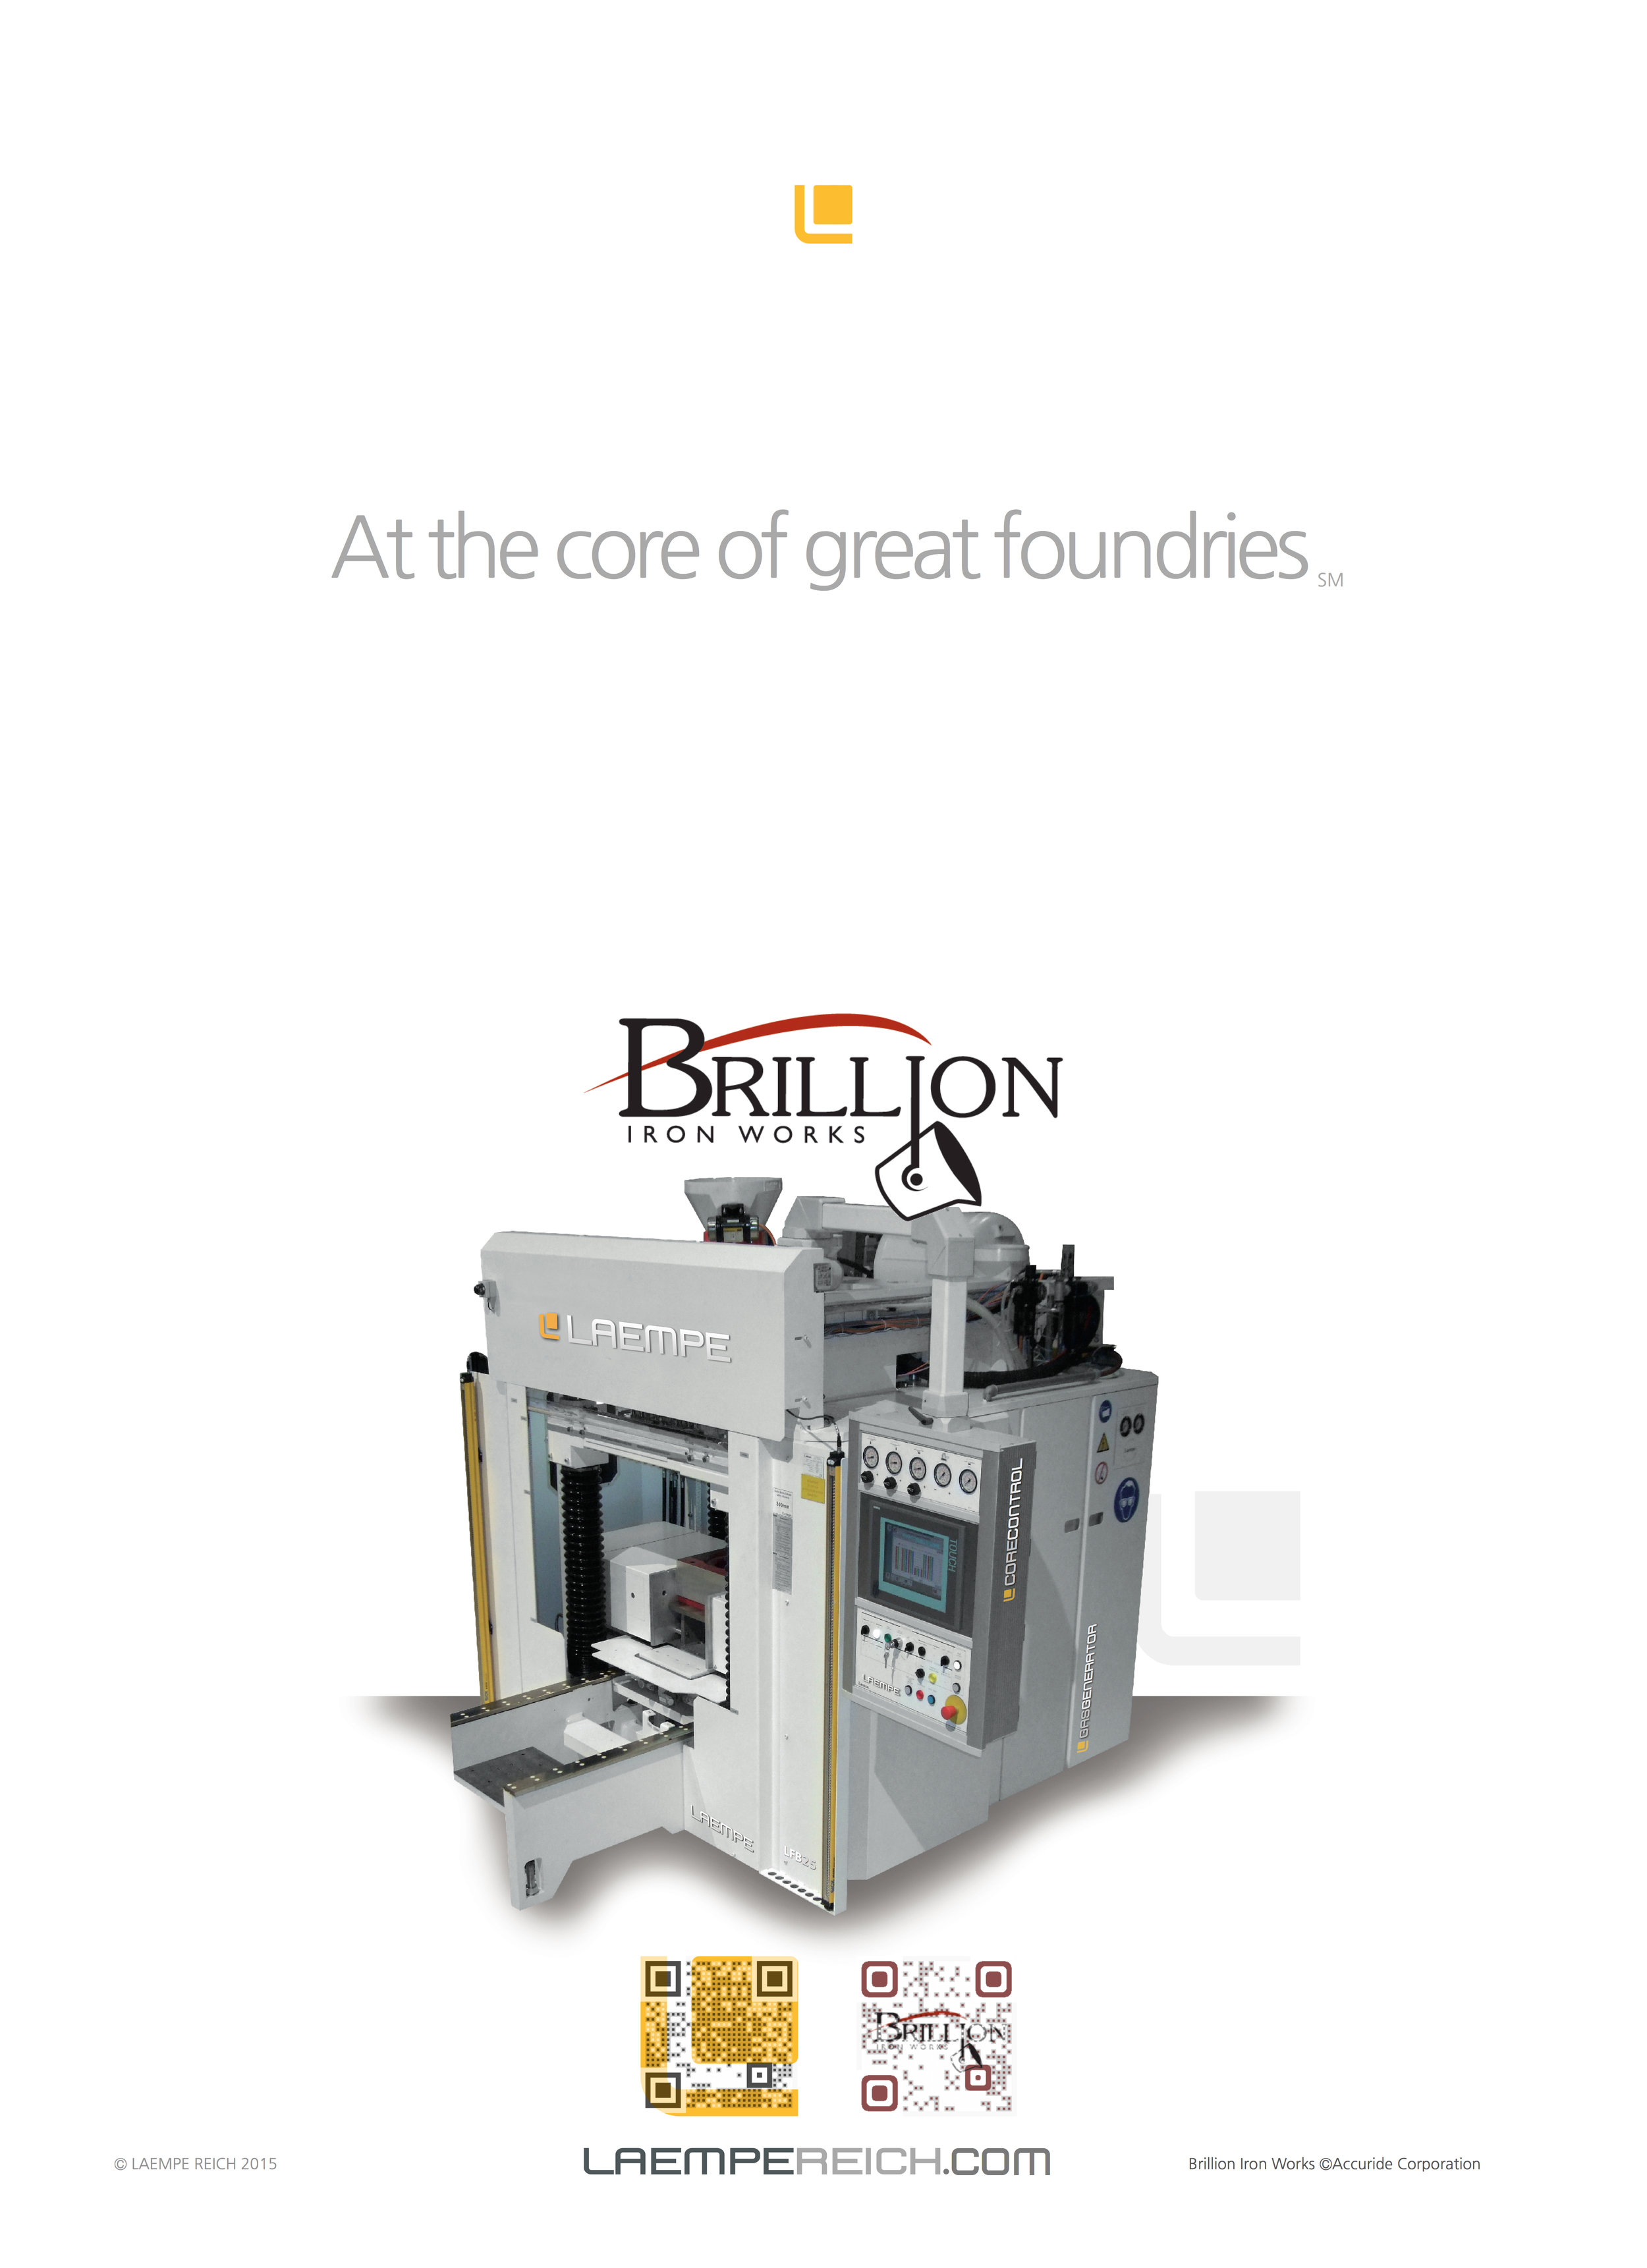 Brillion - At the Core of Great Foundries 2015.jpg